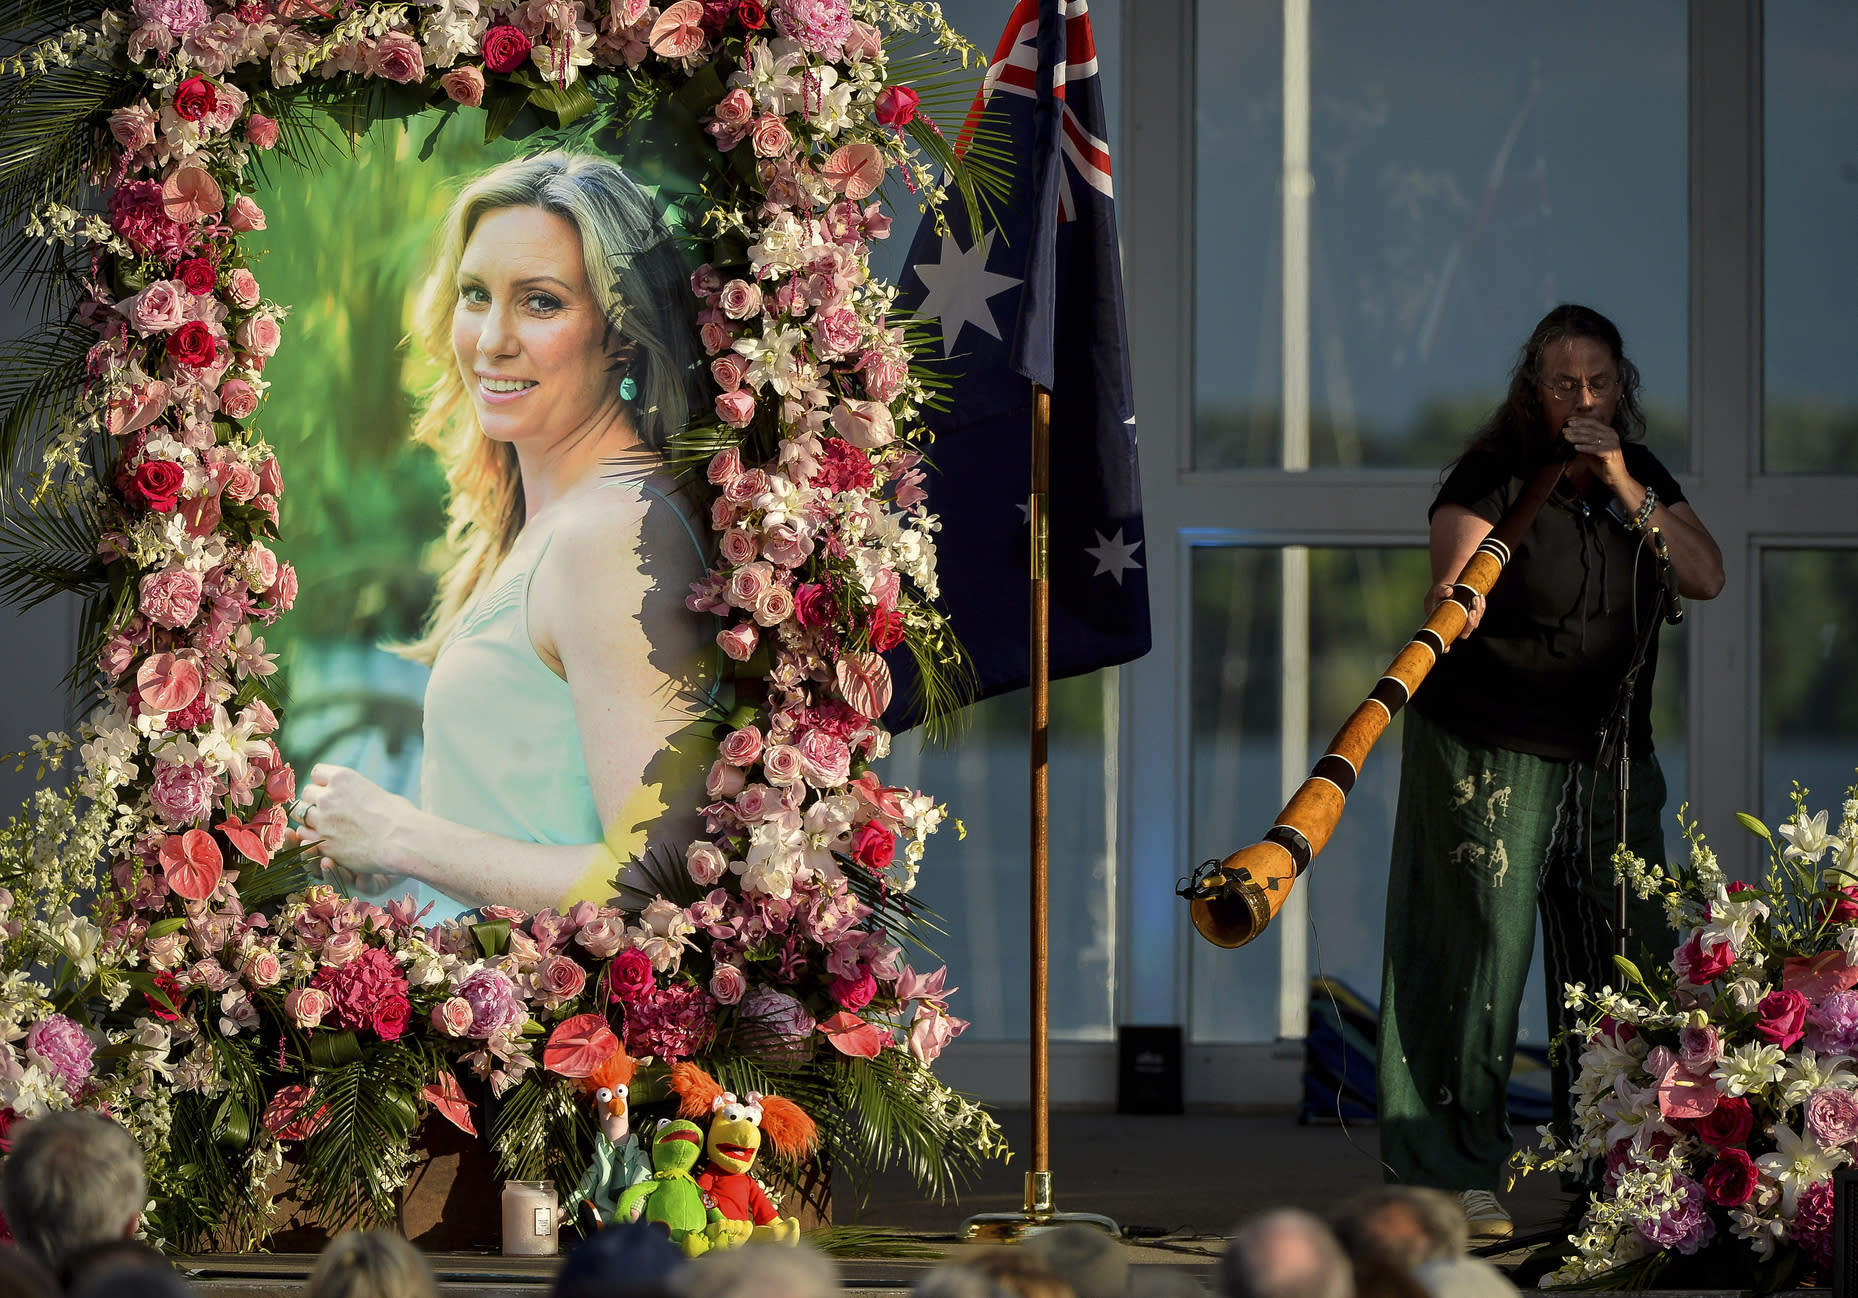 FILE - In this Aug. 11, 2017, file photo, Johanna Morrow plays the didgeridoo during a memorial service for Justine Ruszczyk Damond at Lake Harriet in Minneapolis. Jurors on Wednesday, April 10, 2019, heard the 911 calls Damond made to report a possible sexual assault before she was shot by a Minneapolis officer now on trial for murder in her death. (Aaron Lavinsky/Star Tribune via AP, File)